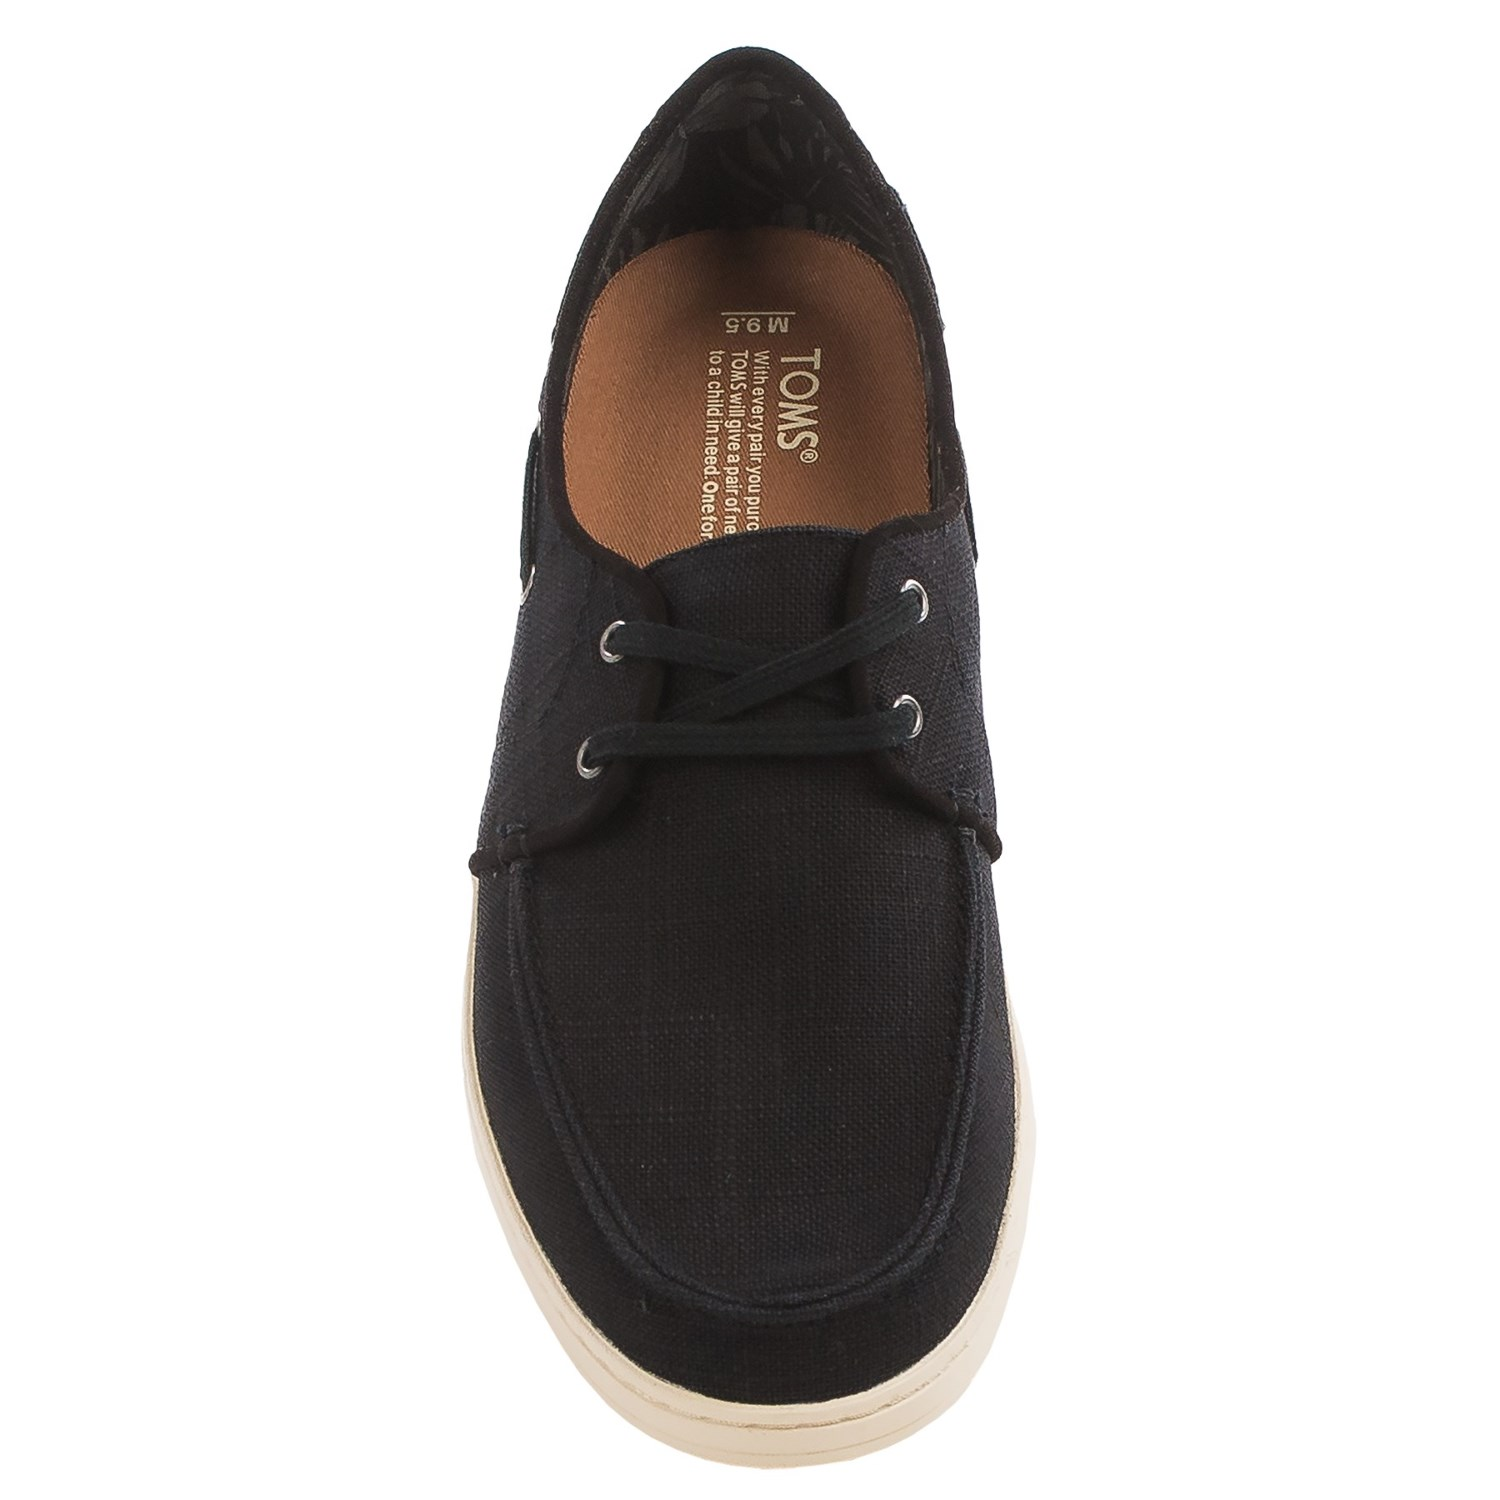 Where To Find Toms Shoes In Stores